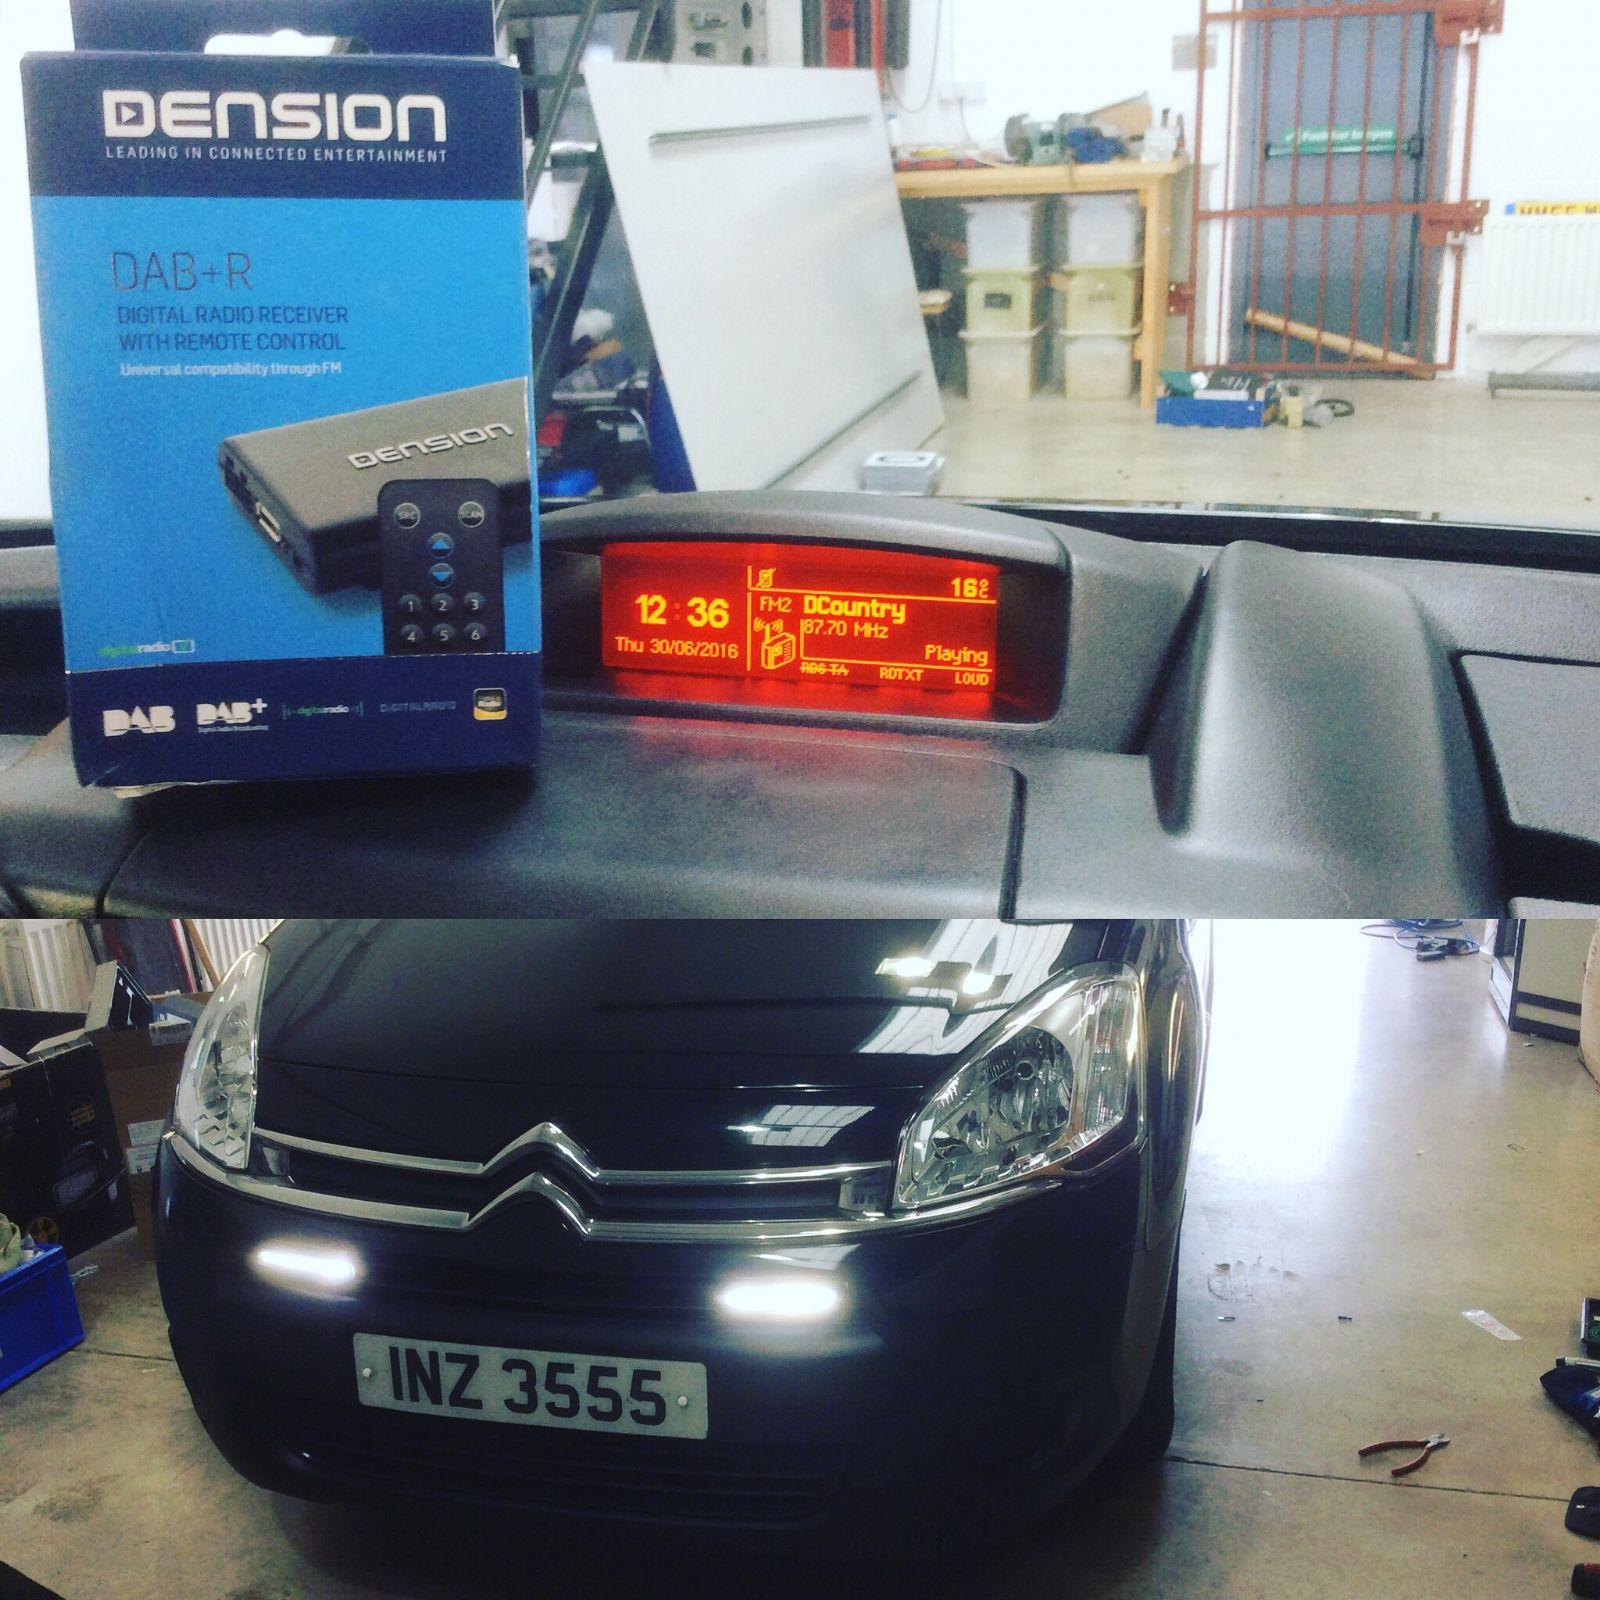 Citroen Berlingo Dension DAB-R